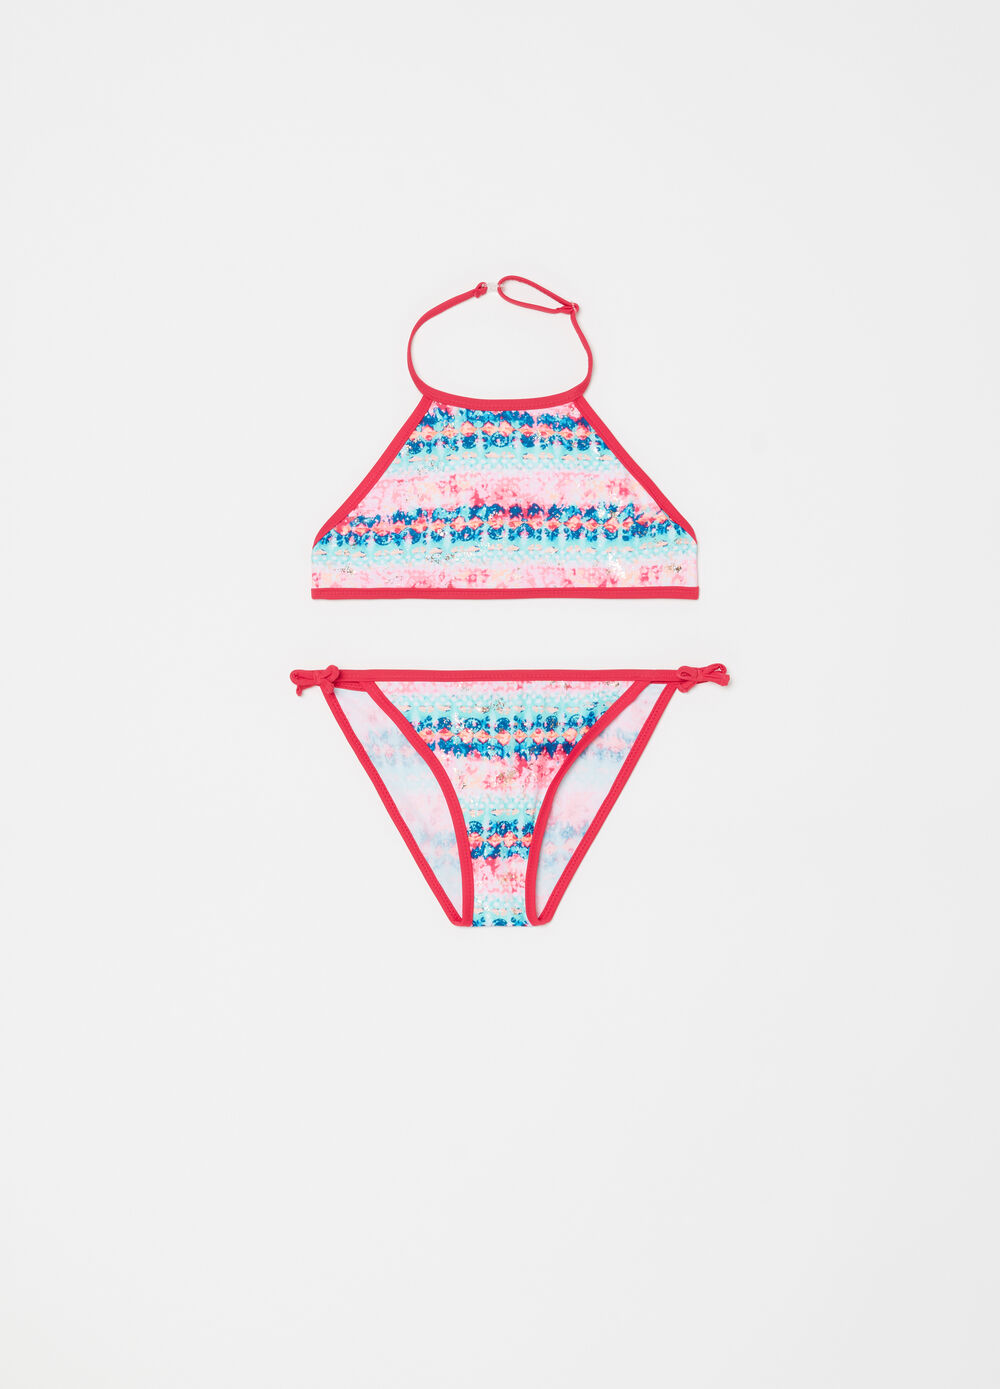 Multicoloured bikini top and briefs by Maui and Sons